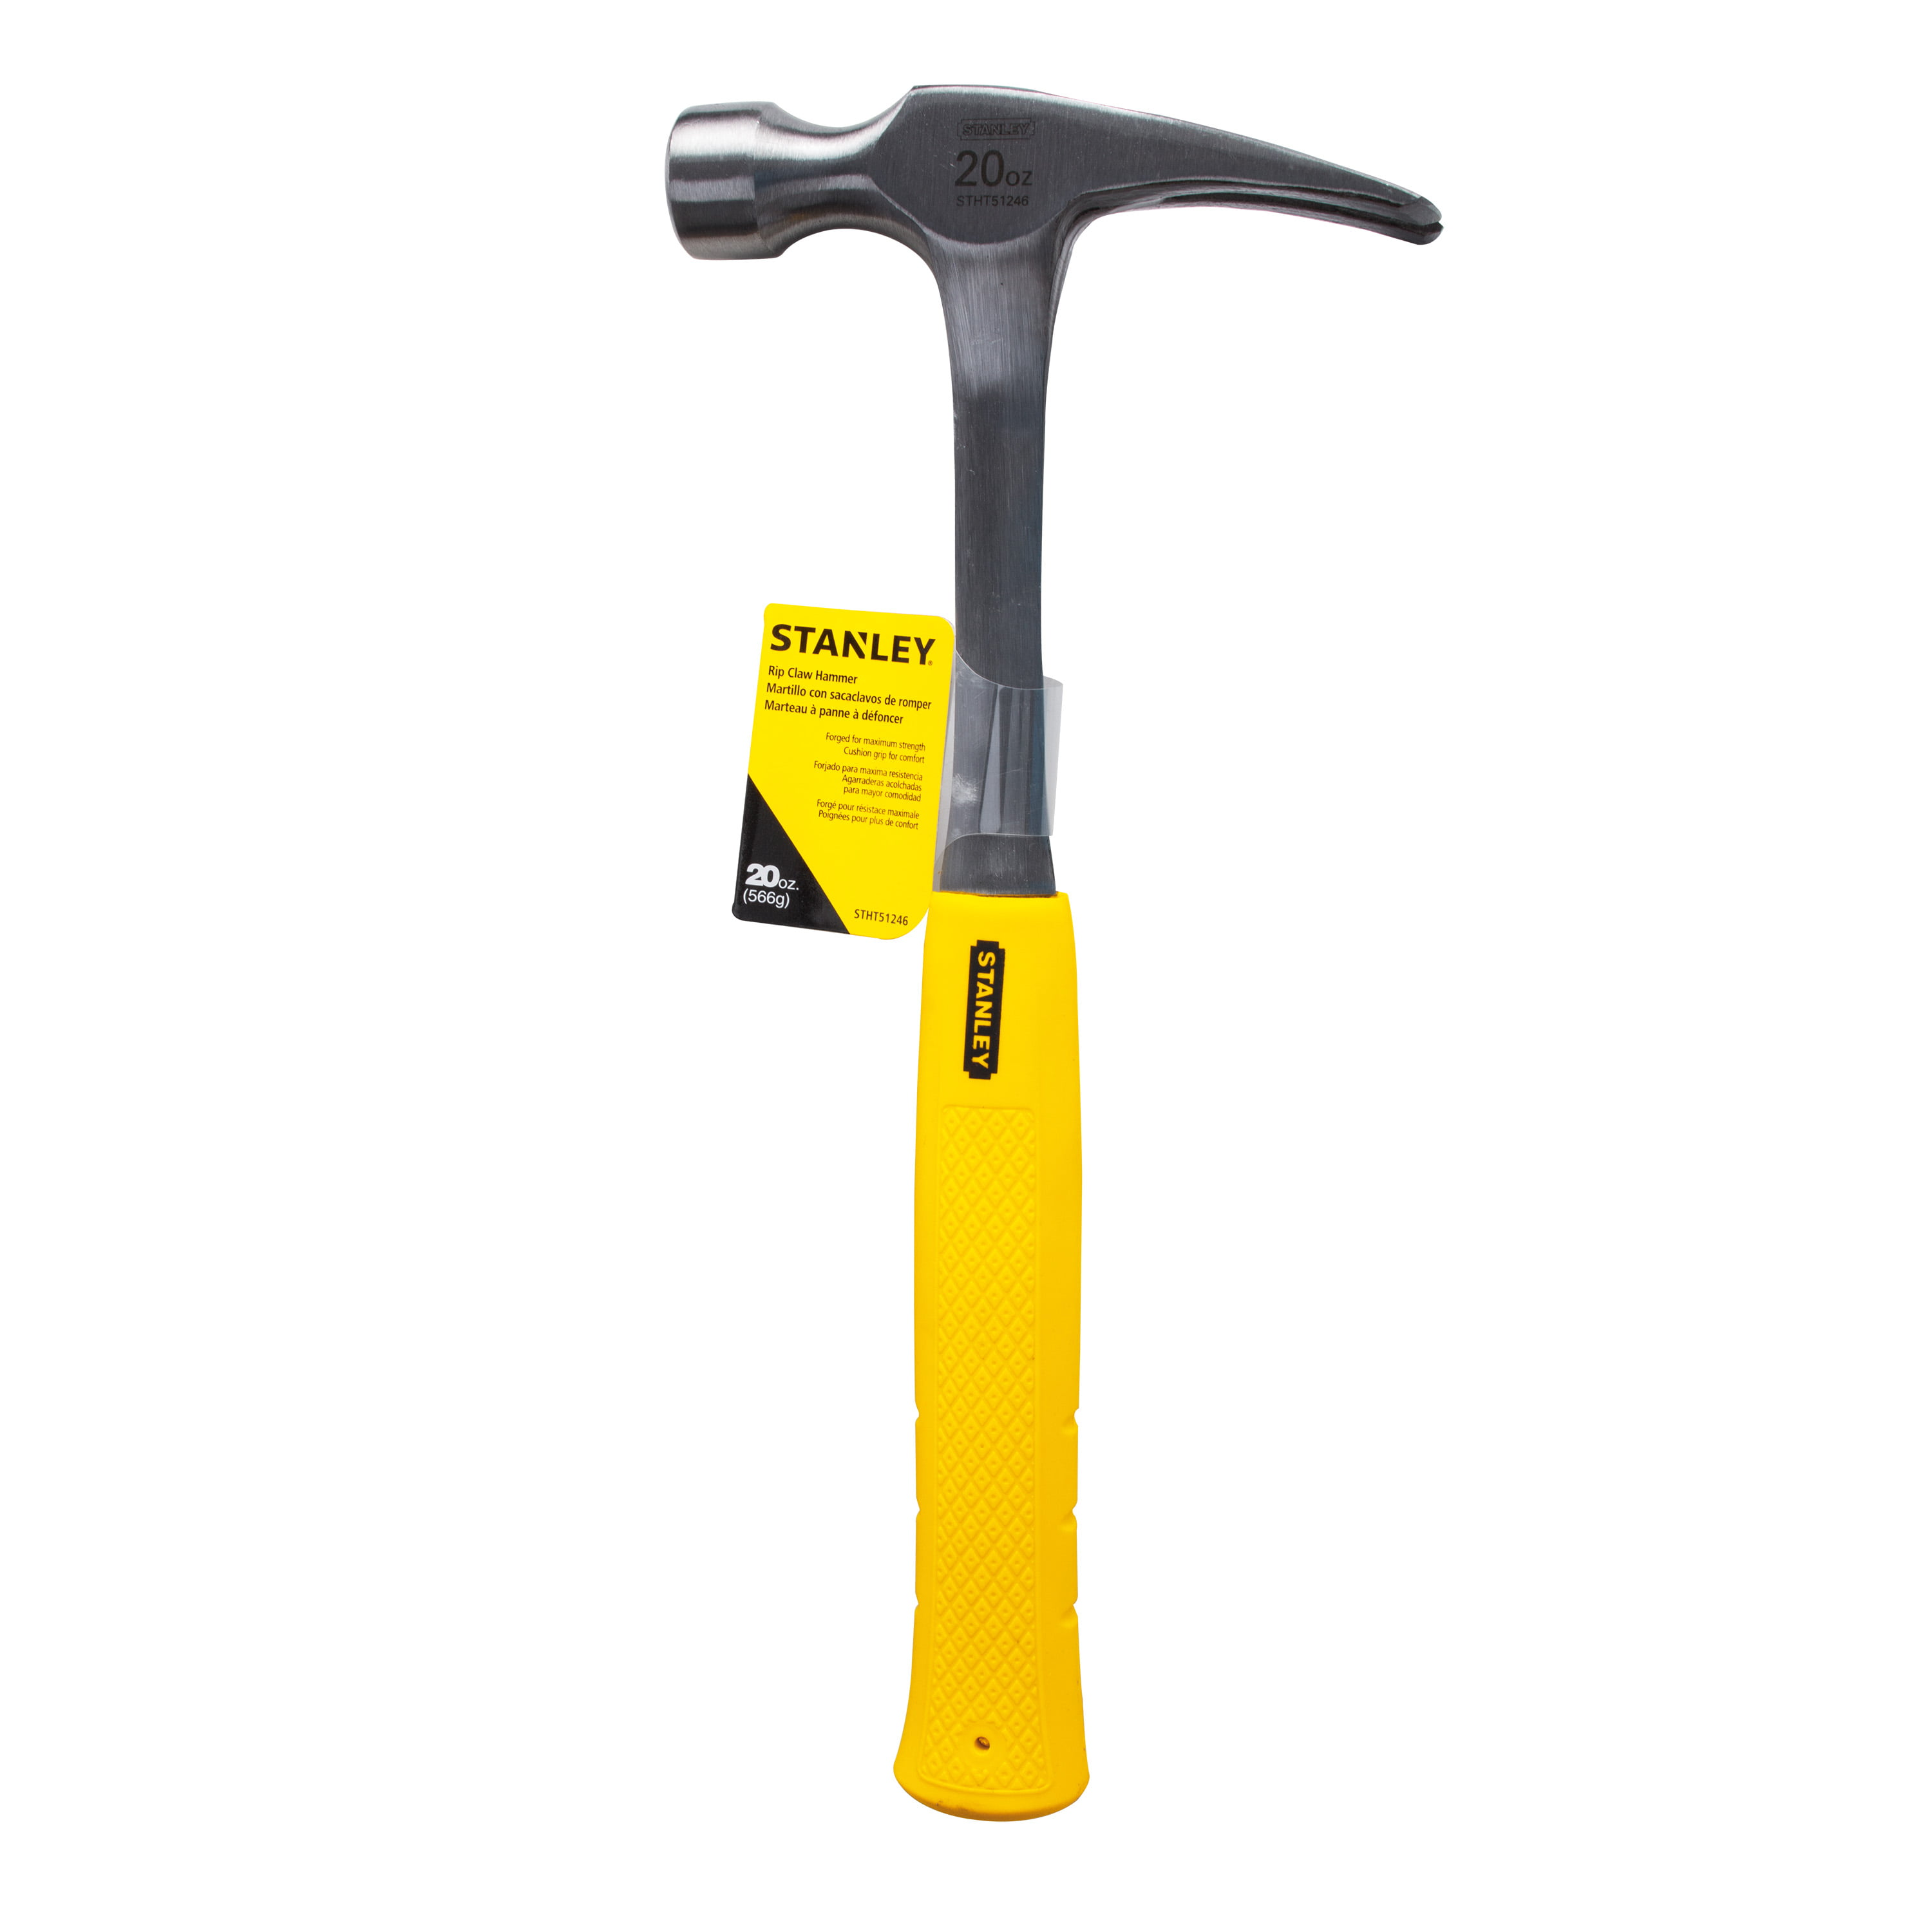 STANLEY STHT51246 20 oz Yellow Rip Claw Hammer by Stanley Black & Decker